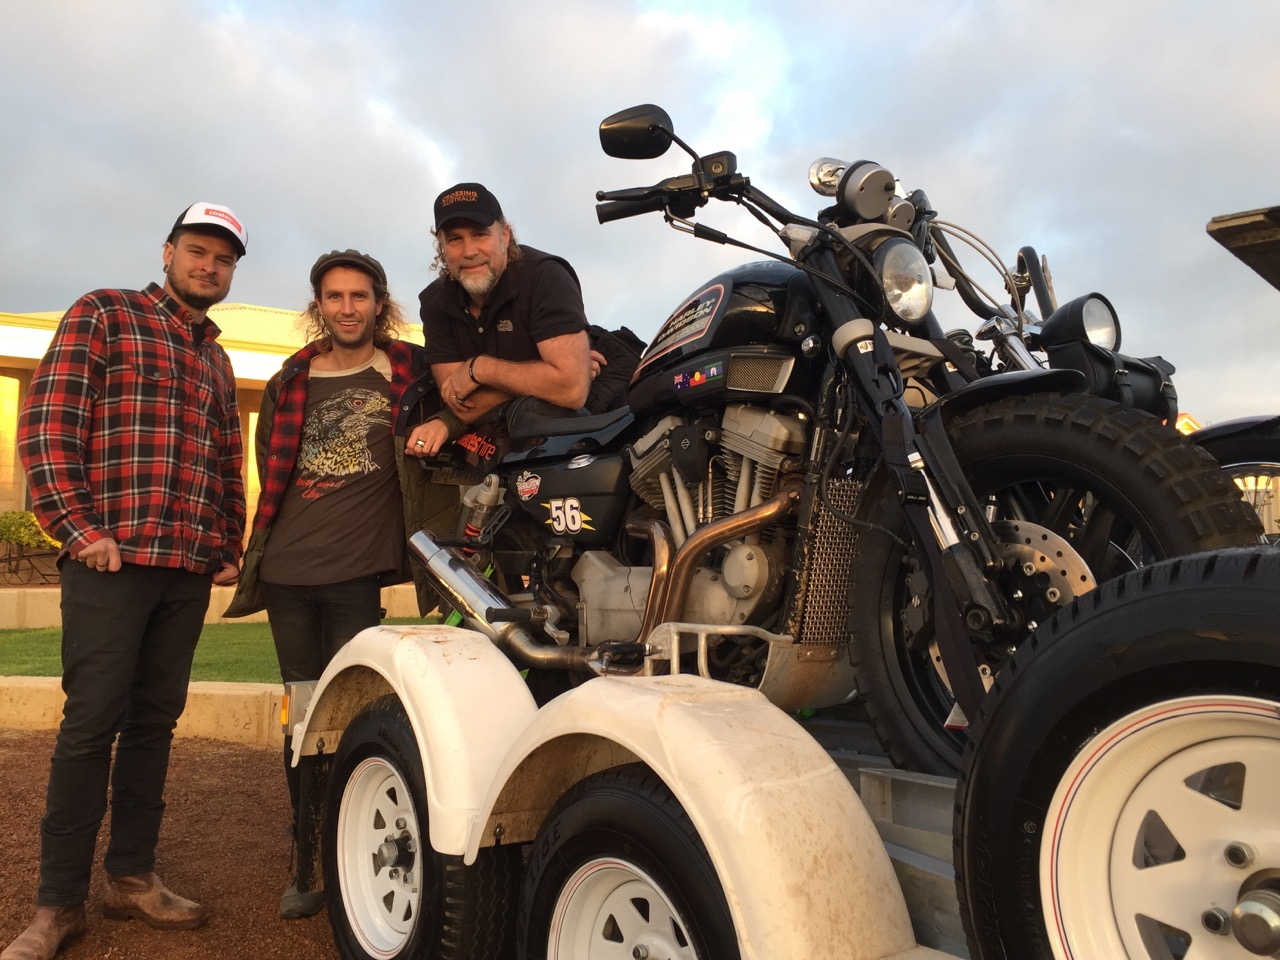 Pictured: Ryan, Cheyne and Steve Grace ready for an epic journey across the Australian deserts..